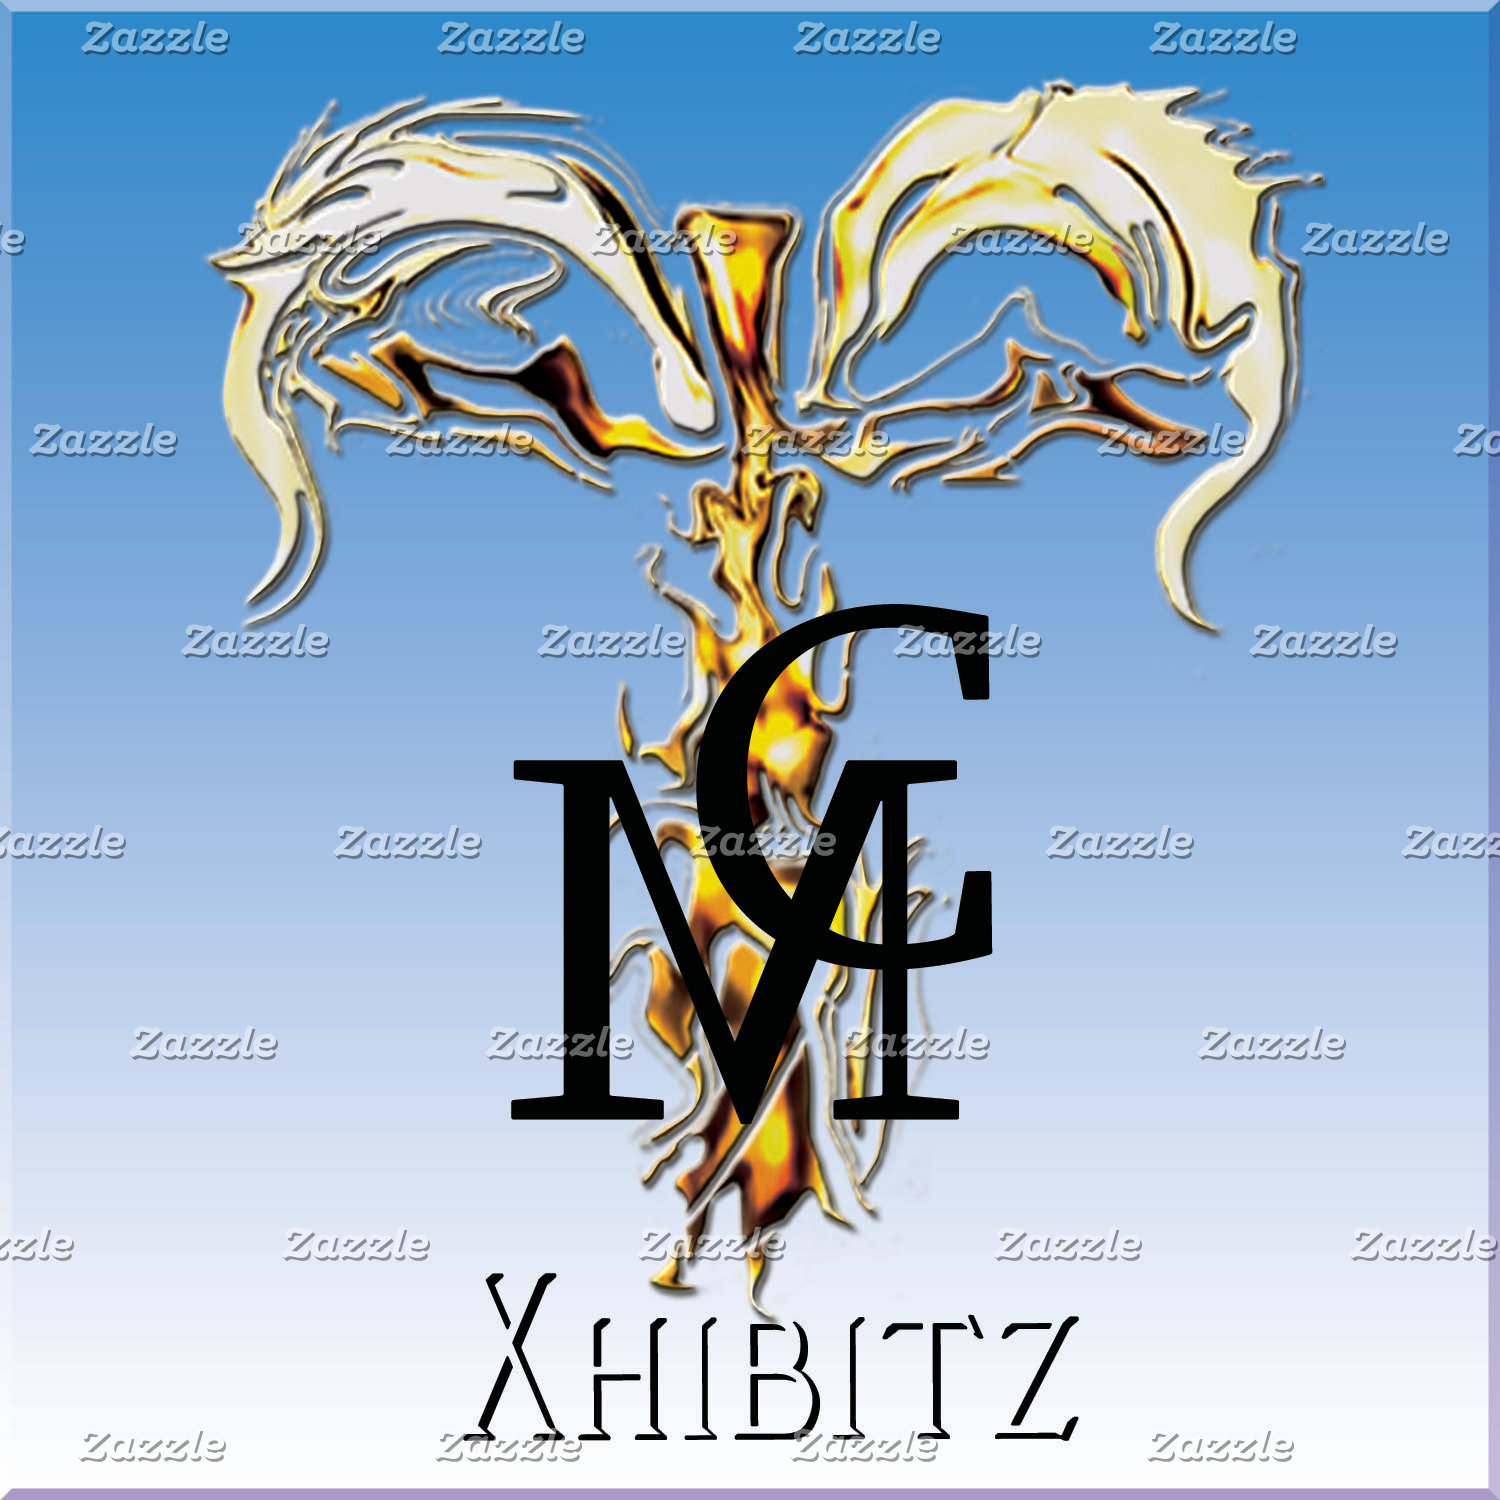 Xhibitz Men's Apparel™by Michael Crozz